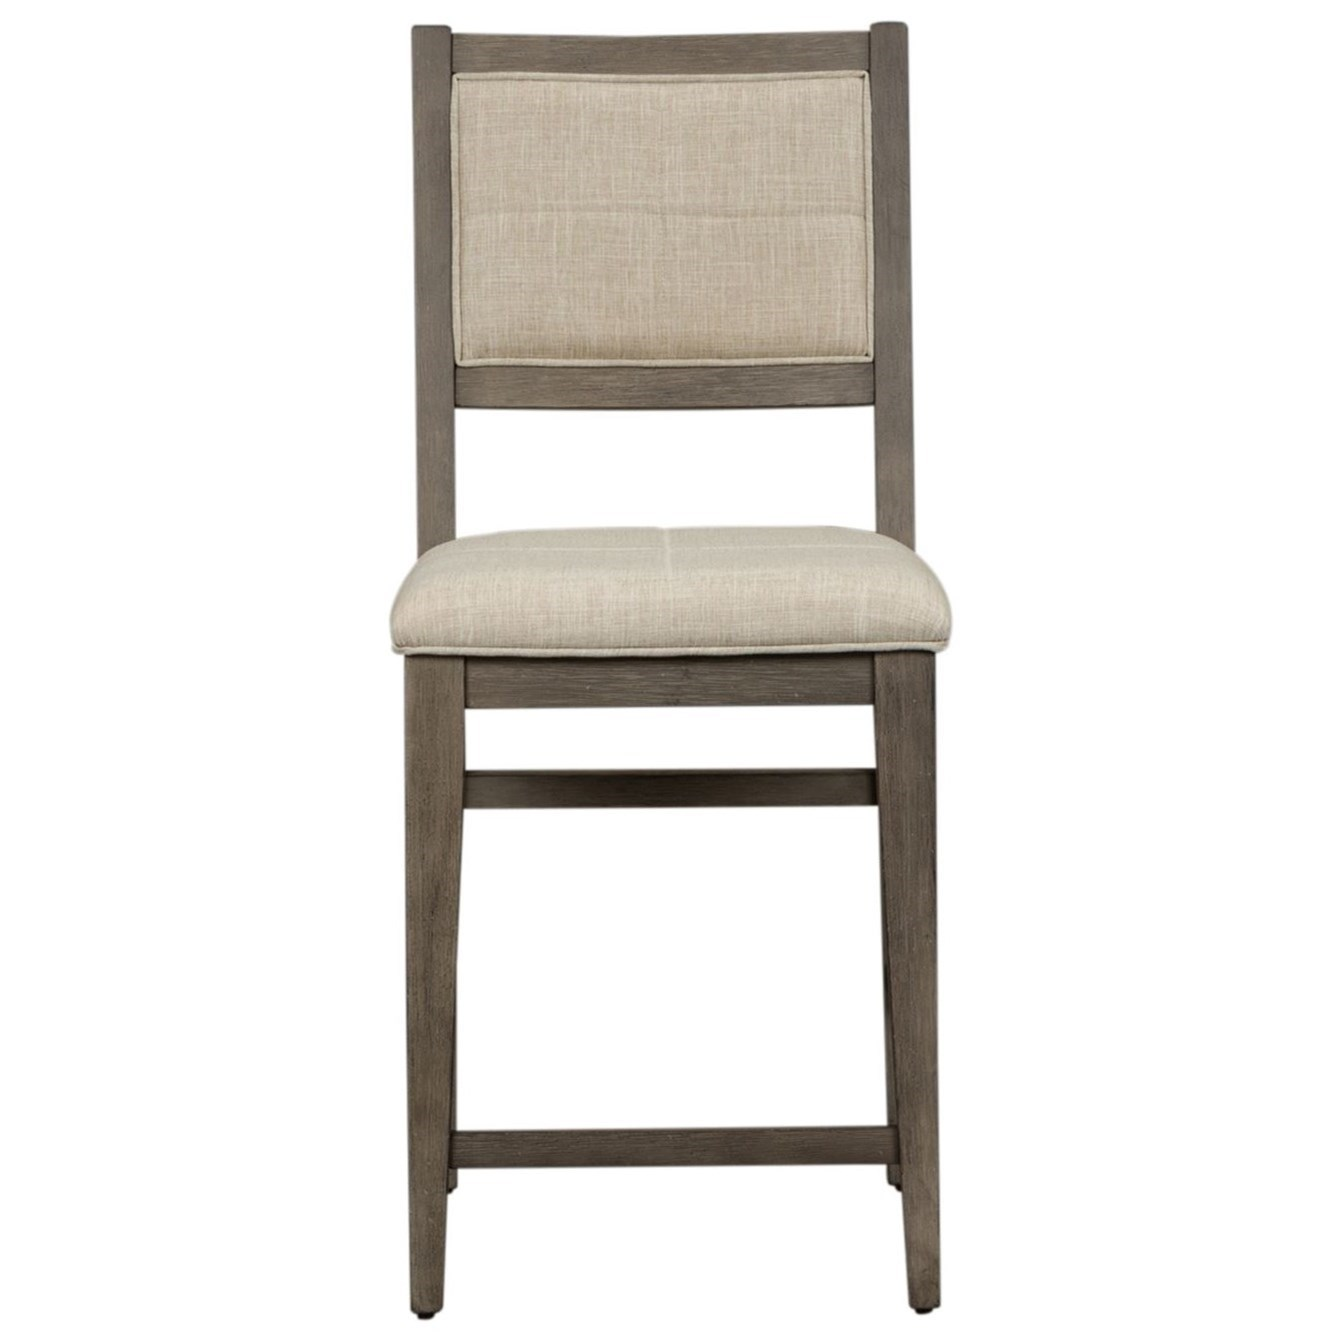 Crescent Creek Upholstered Counter Height Chair (RTA) by Libby at Walker's Furniture